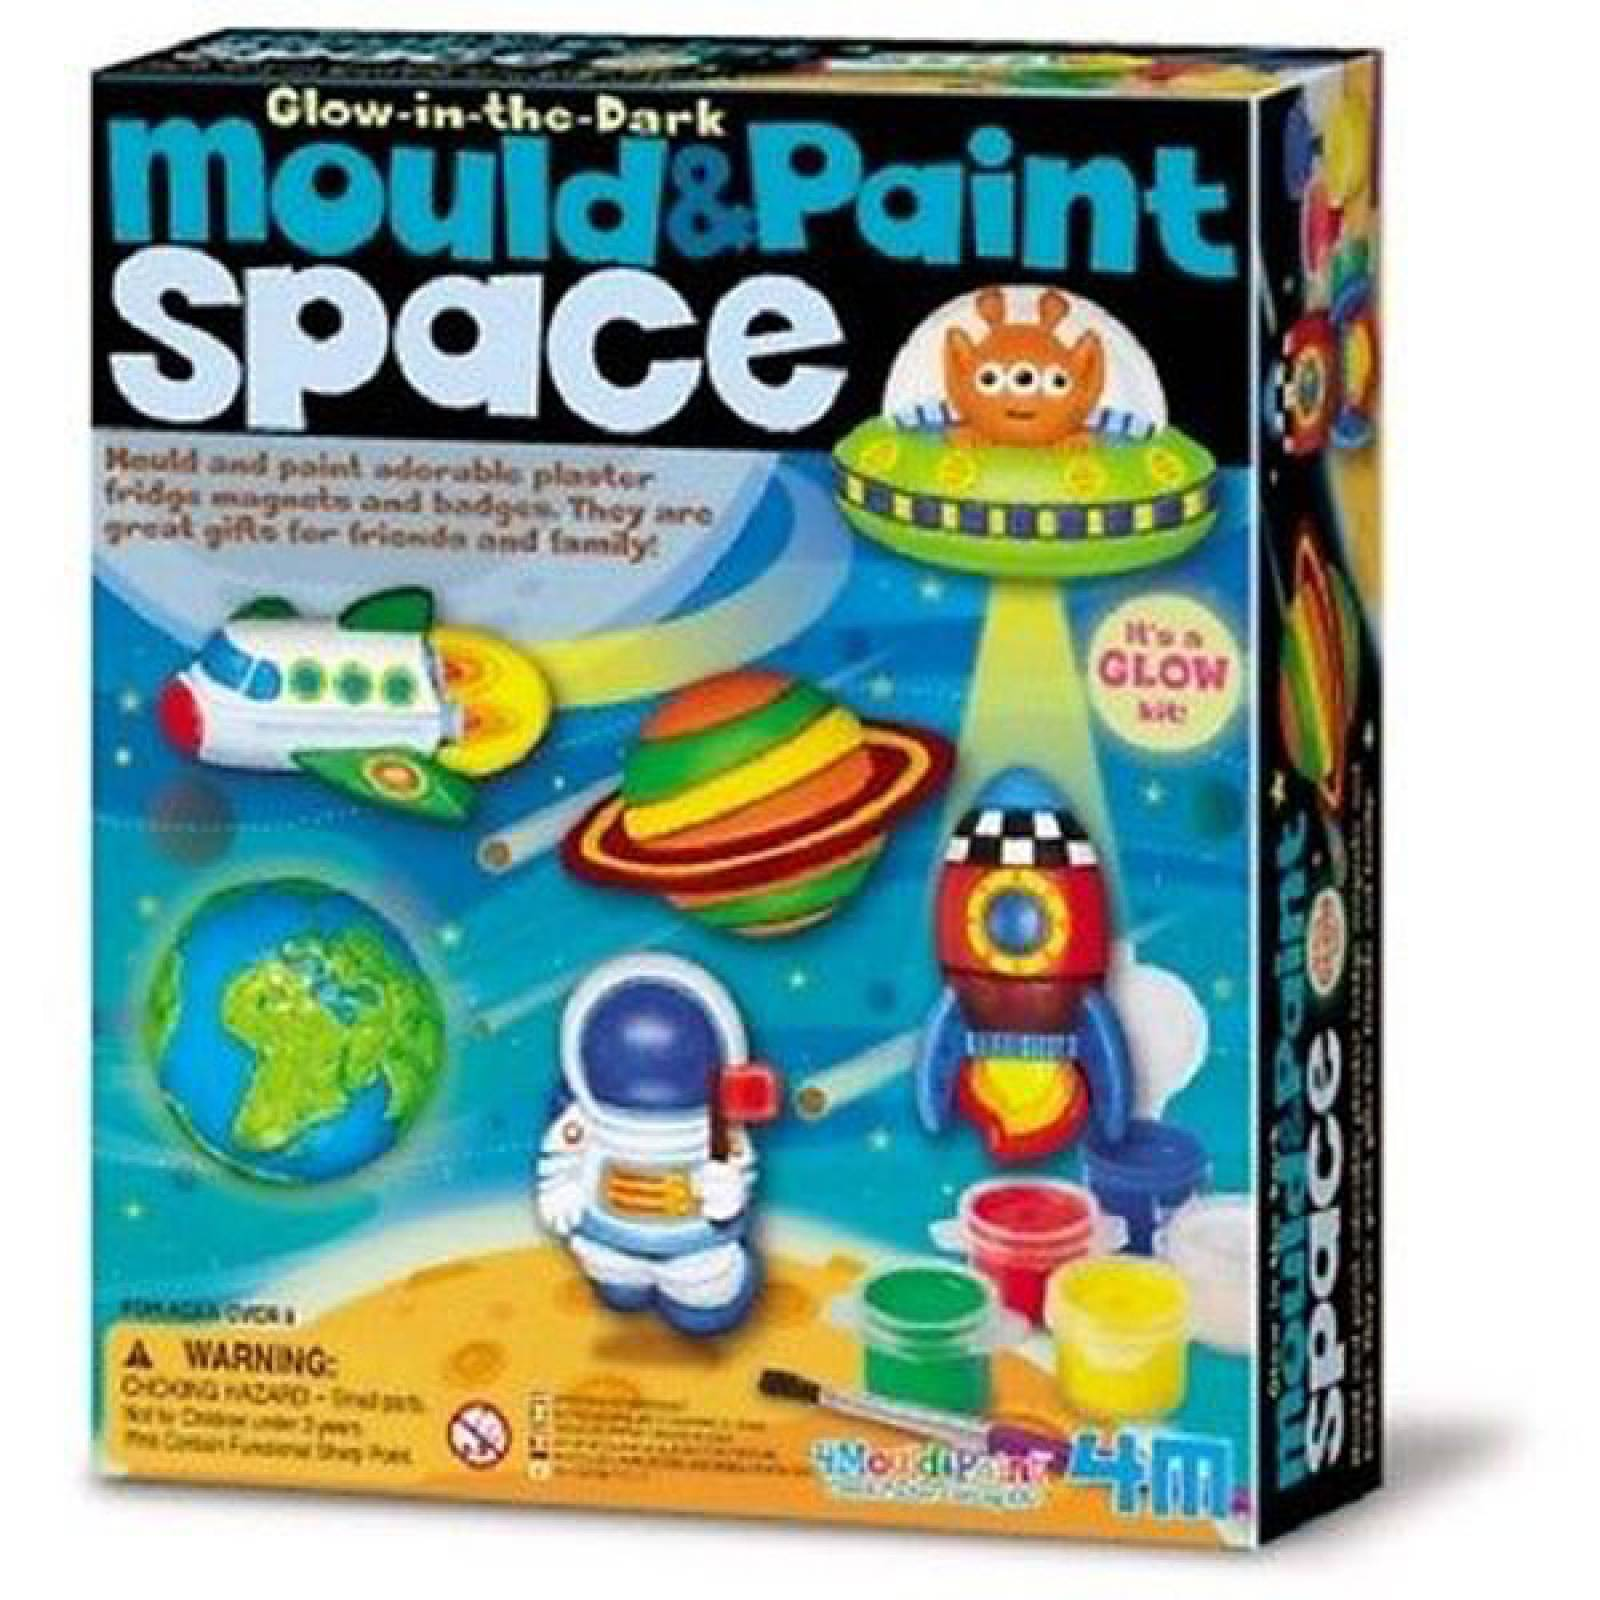 Mould & Paint - Space - Art Kit 5+